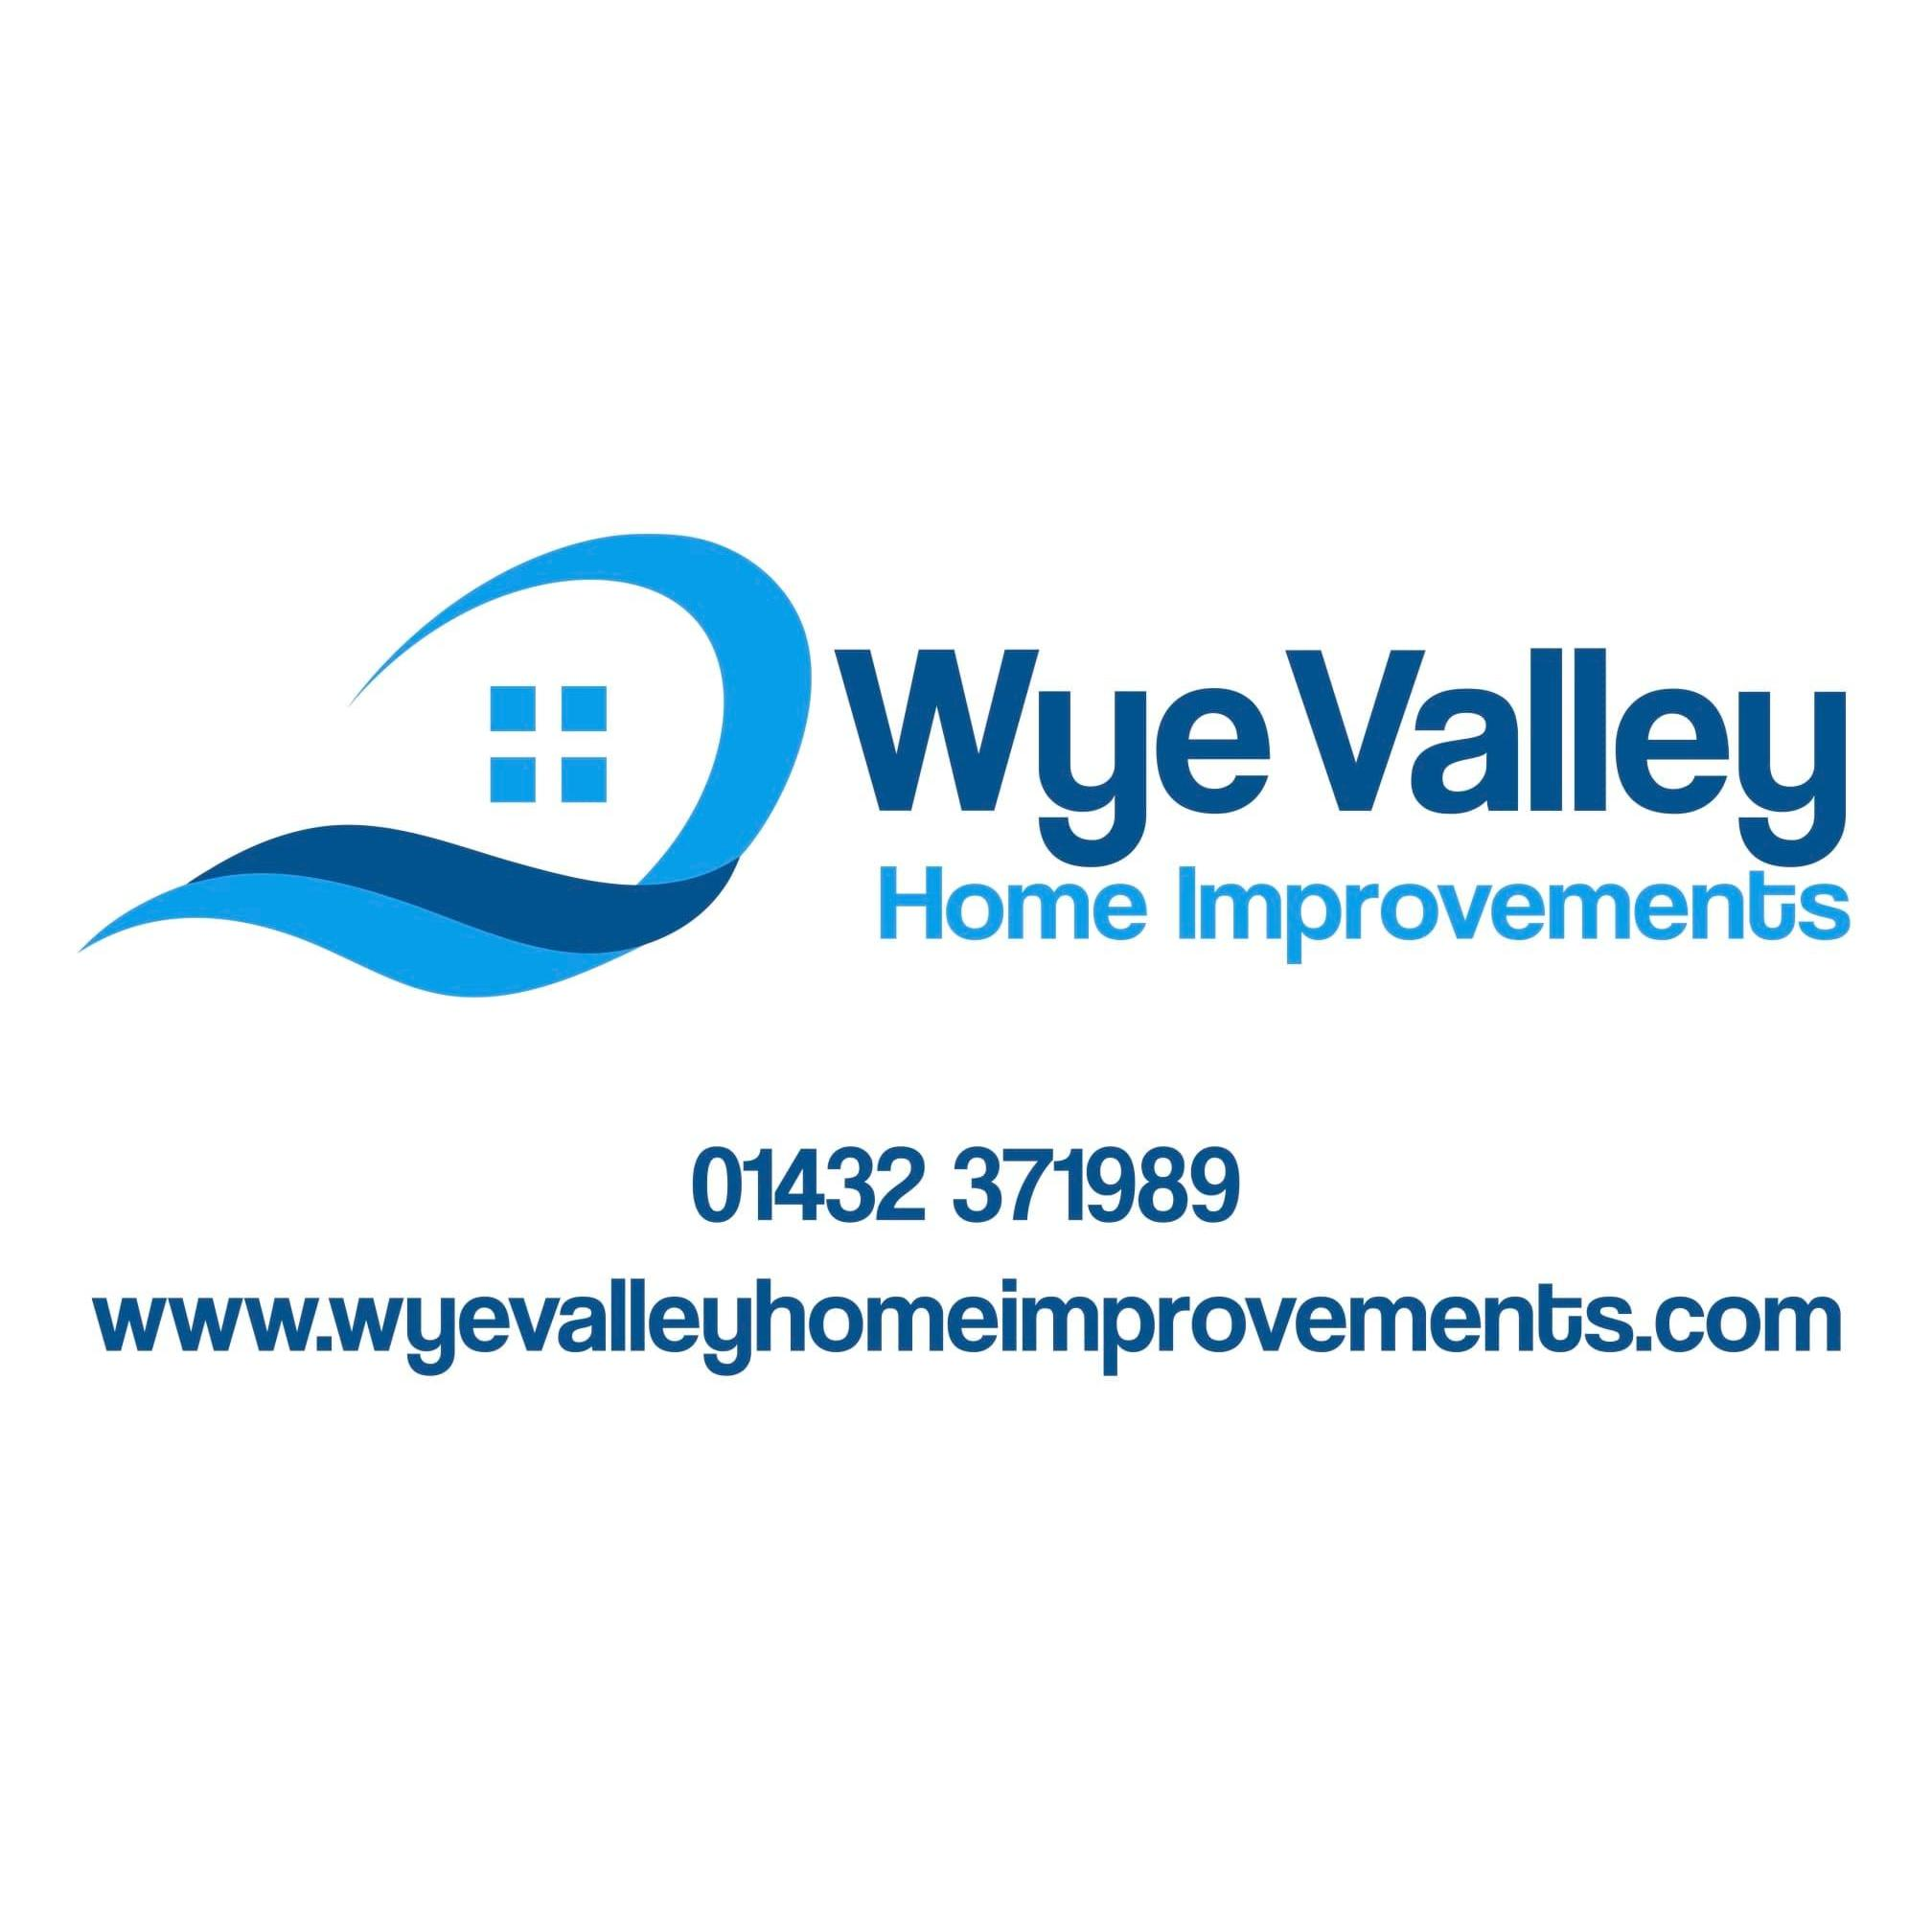 Wye Valley Home Improvements - Hereford, Herefordshire HR2 6FE - 01432 371989 | ShowMeLocal.com